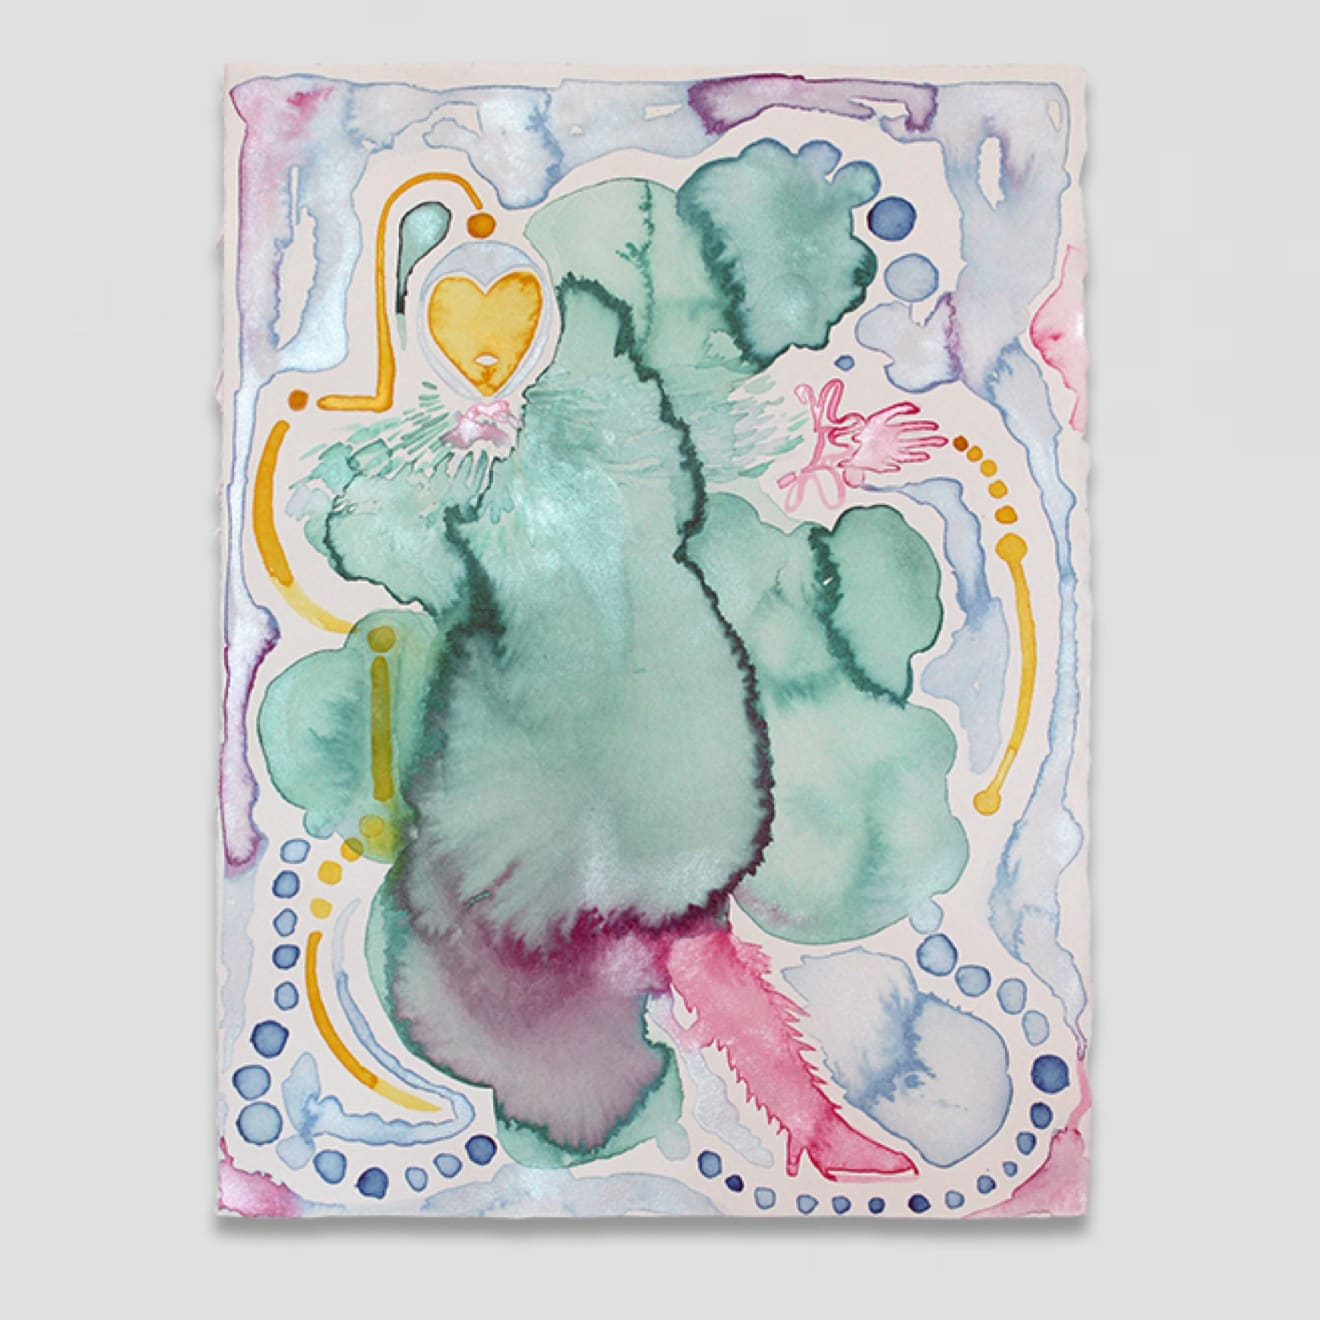 Susie Green Avatar (VIII), 2021 Watercolour and pencil on 300gsm Arches cotton paper 38 x 28 cm 15 x 11 1/8 in